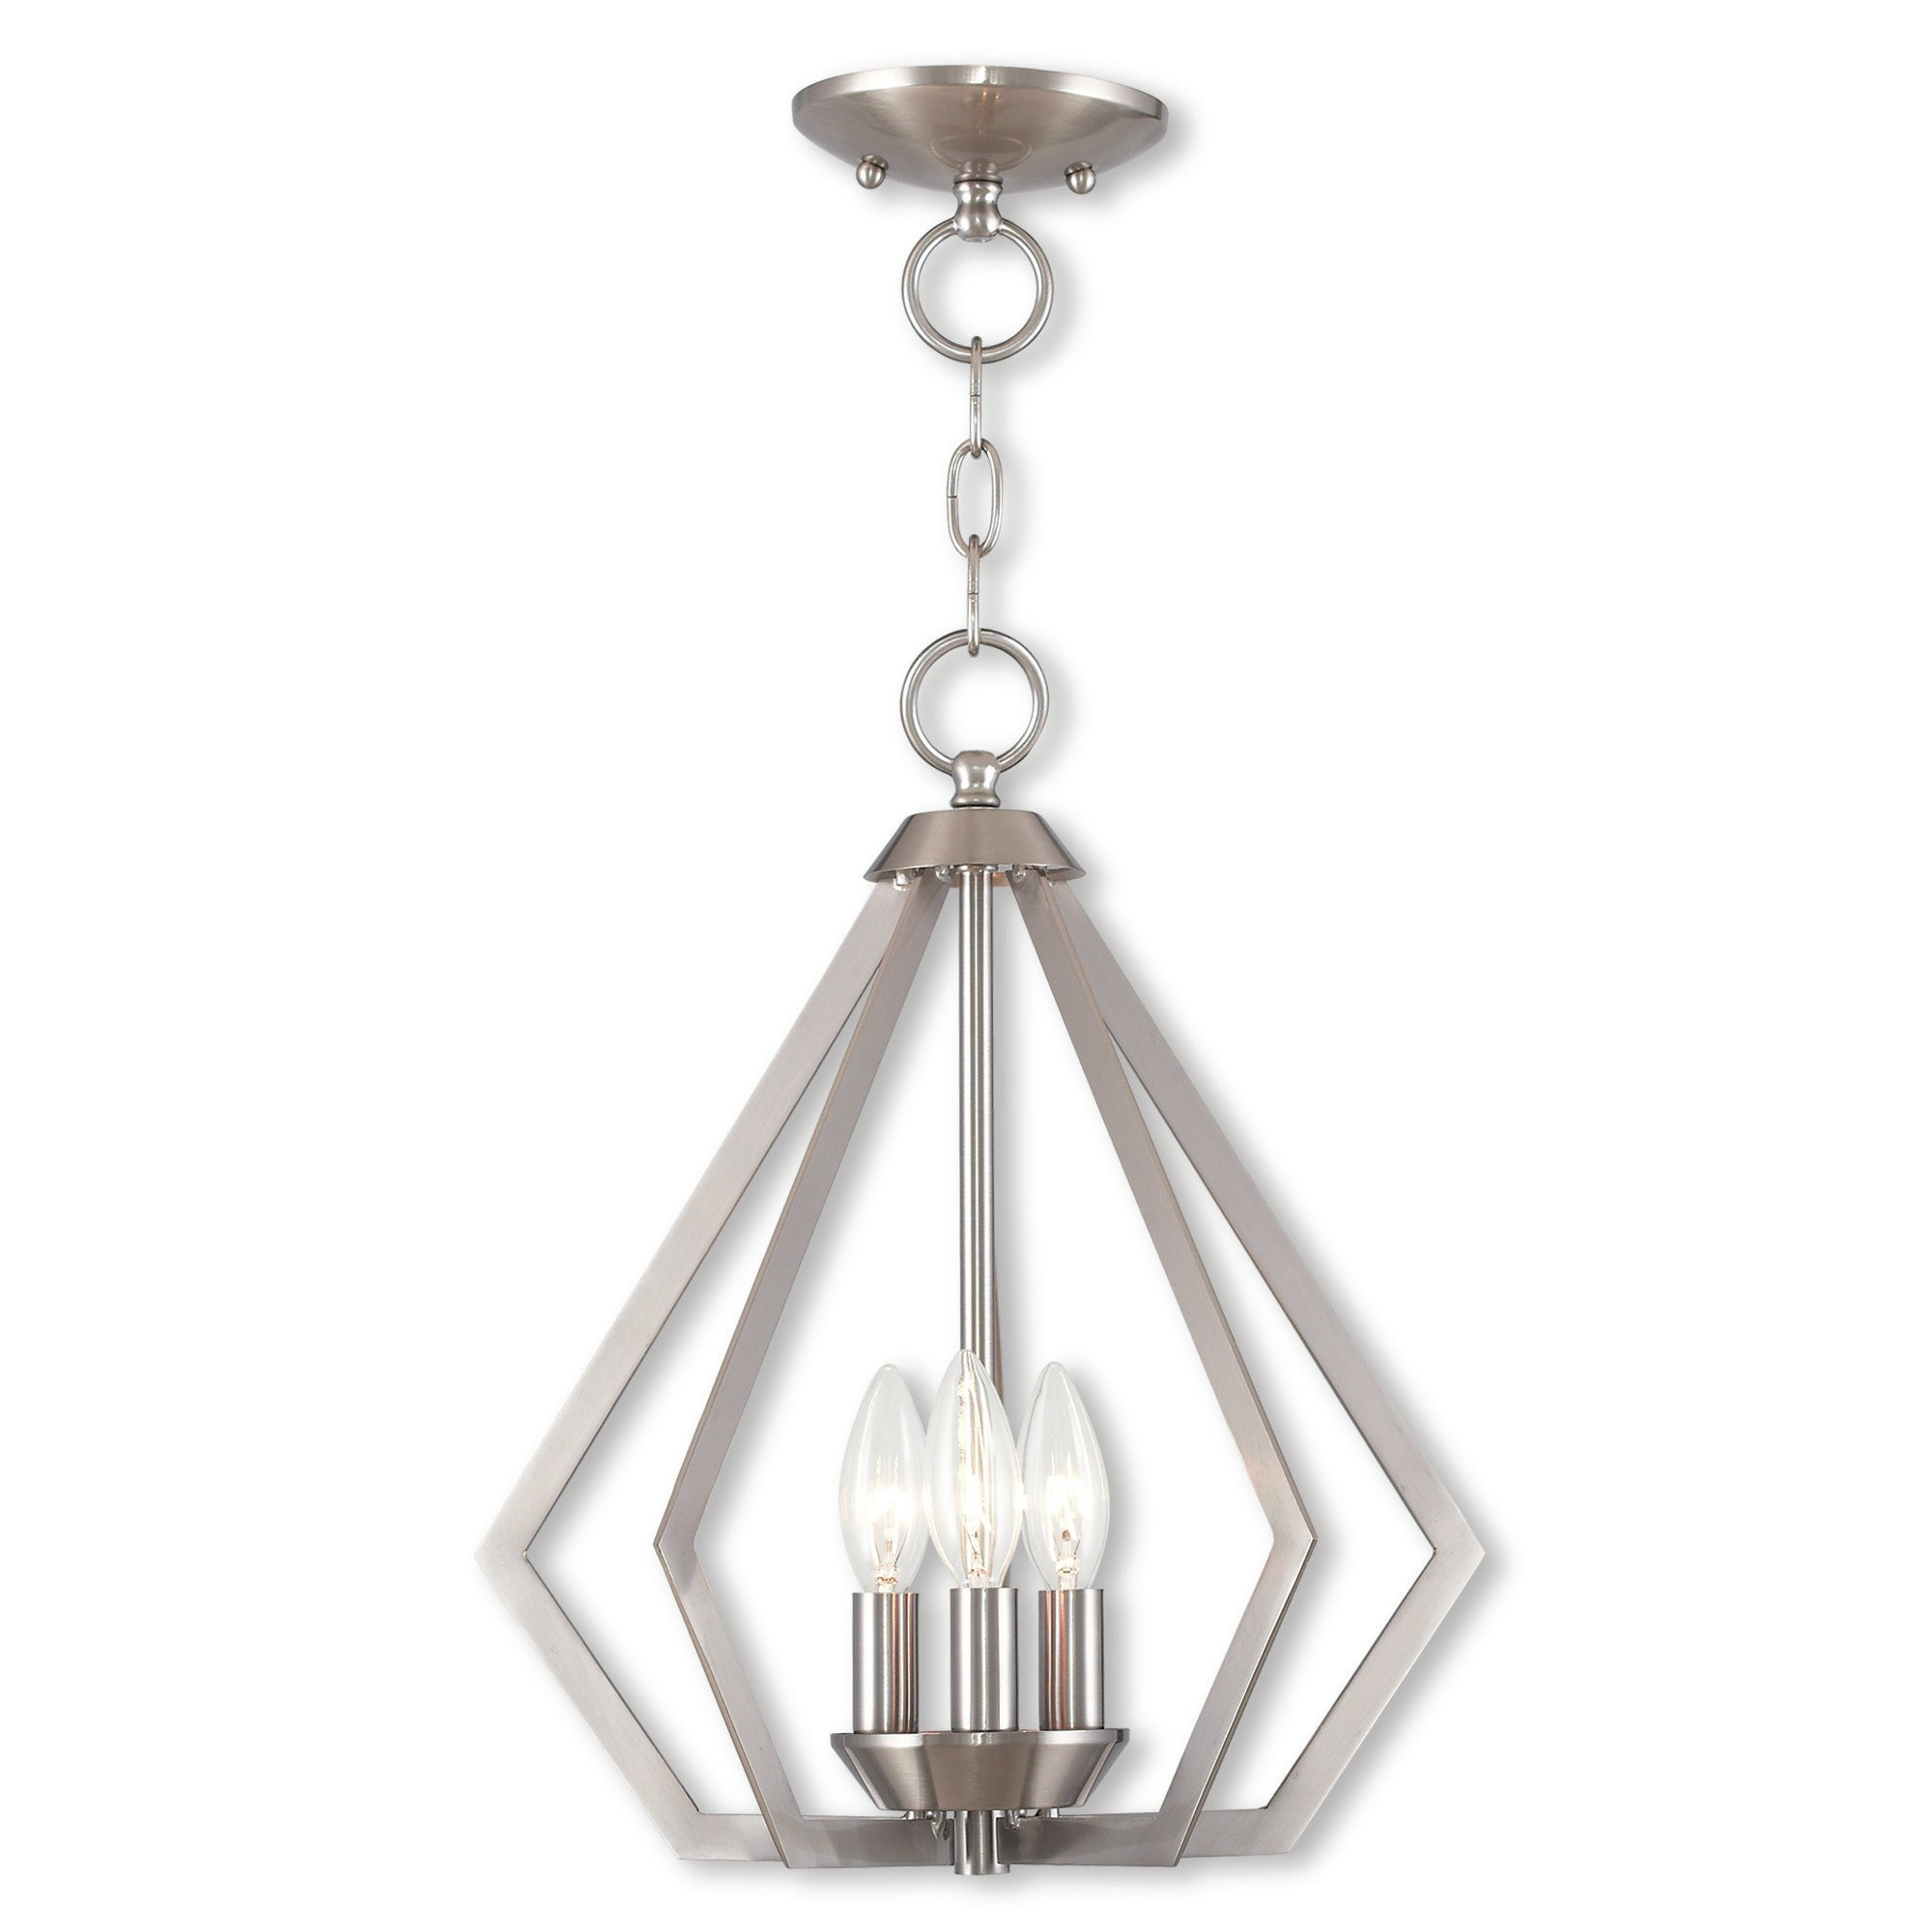 Borasisi 3-Light Lantern Geometric Pendant throughout Chauvin 3-Light Lantern Geometric Pendants (Image 4 of 30)